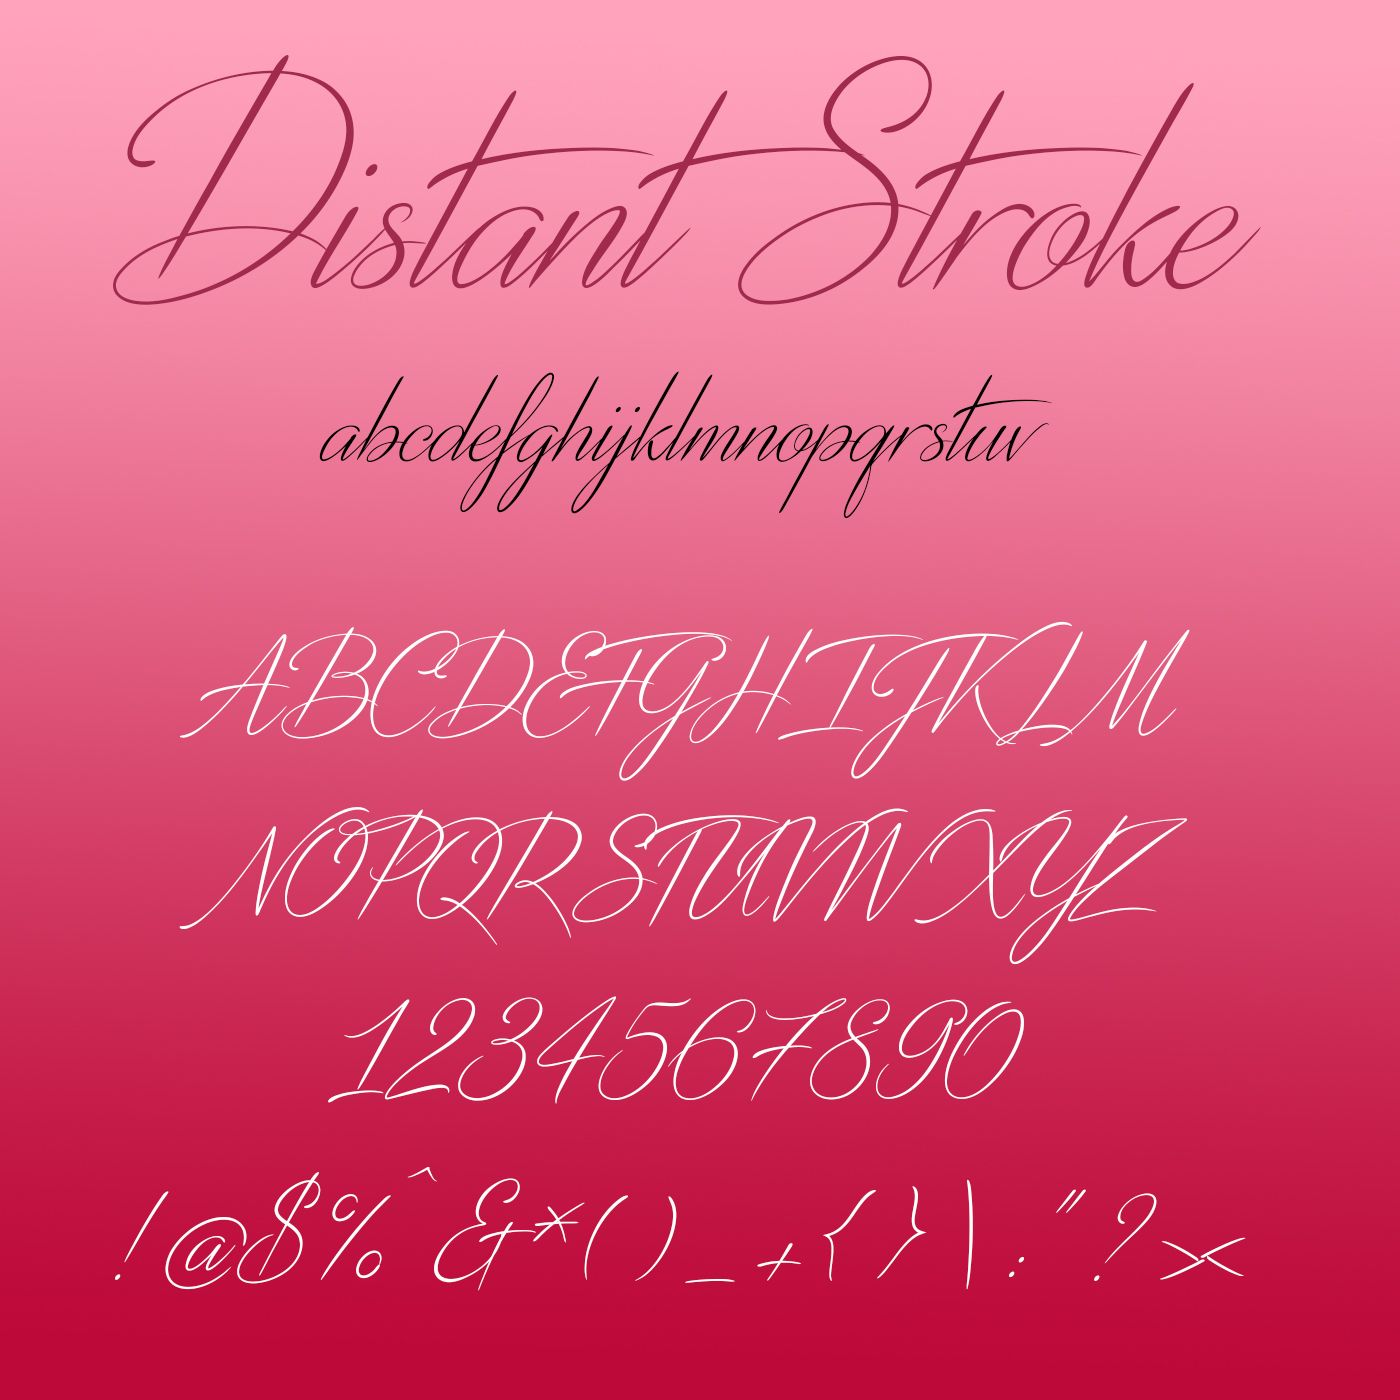 Distant Stroke a clean and breezy handwritten font